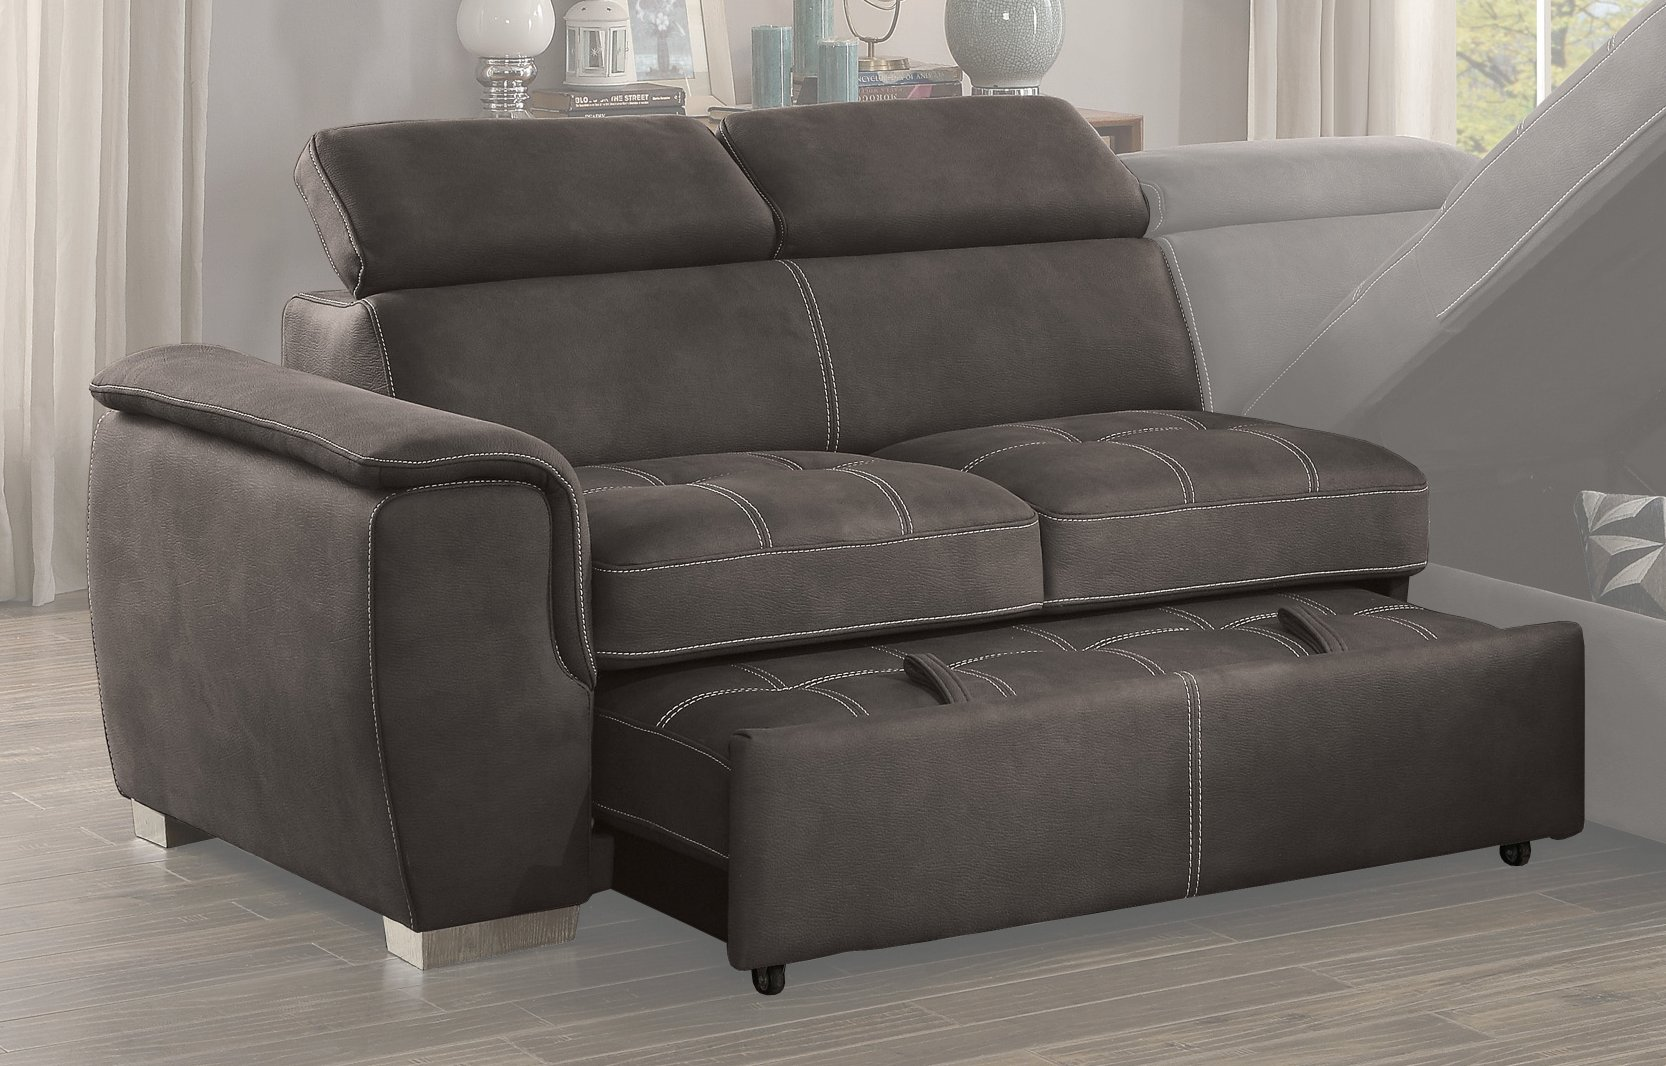 Taupe Sectional Sofa With Pullout Bed And Right Side Storage Chaise Ferriday Rc Willey Furniture